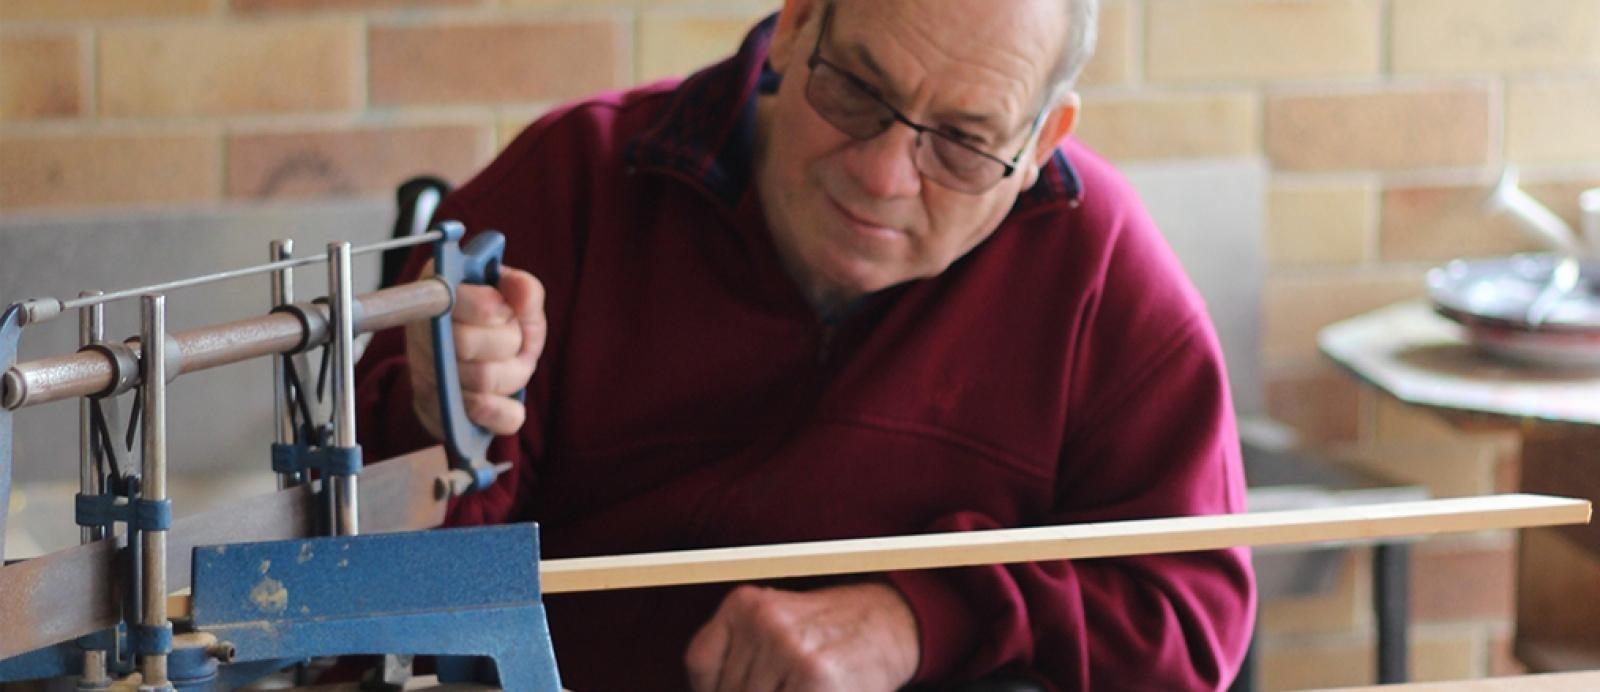 elderly man does woodwork as part of a testimonial about NDIS support coordination